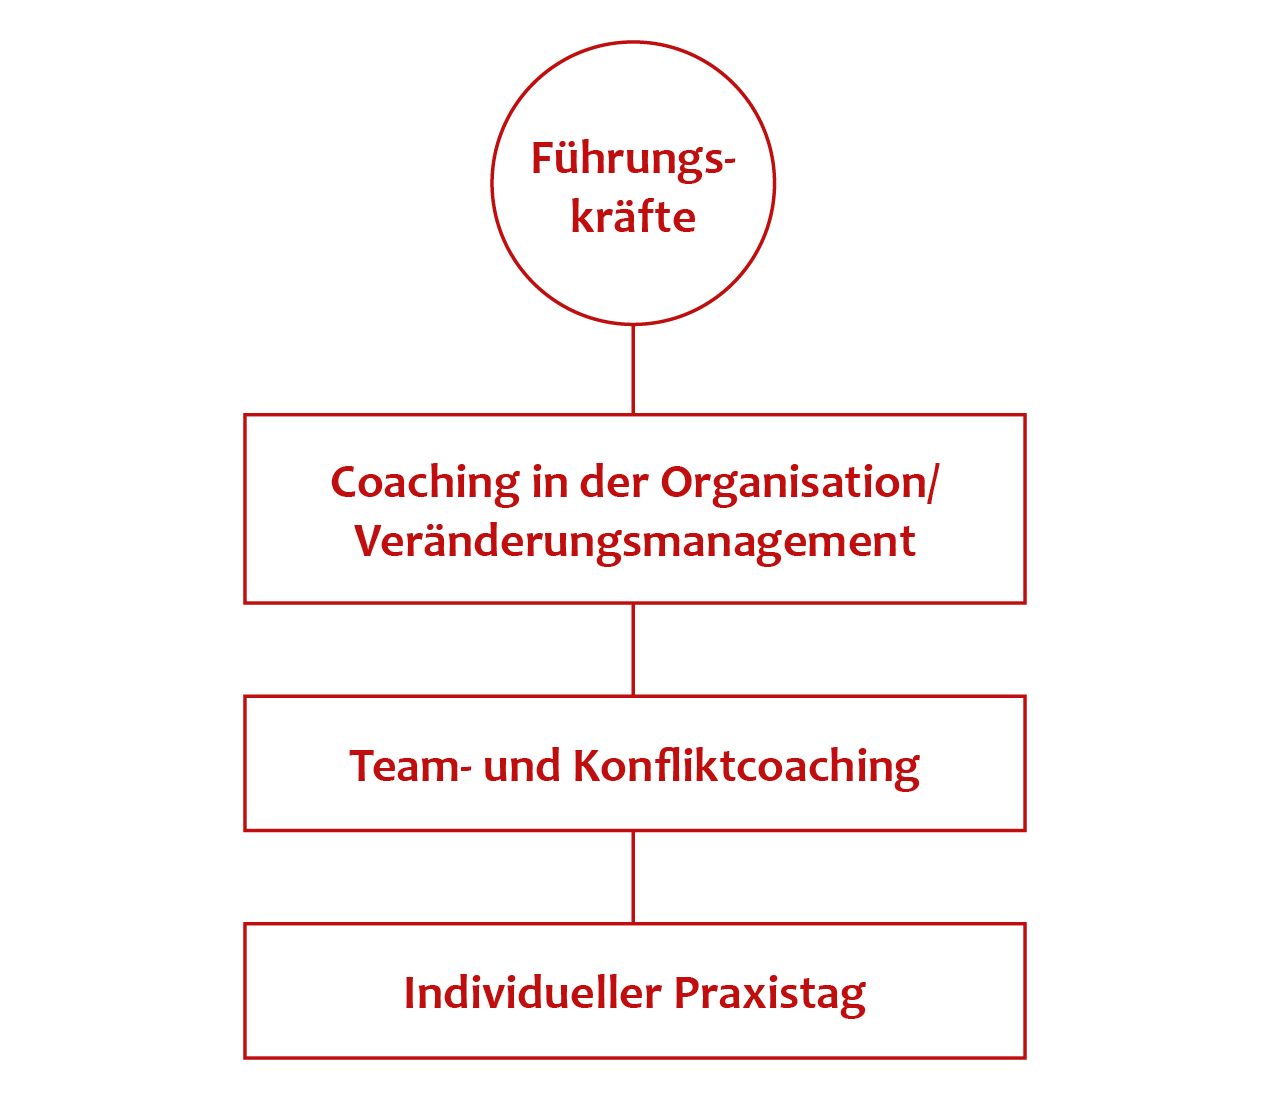 https://www.teamact.de/wp-content/uploads/2018/04/teamact-inhouse-coaching-ausbildung-grafik.png